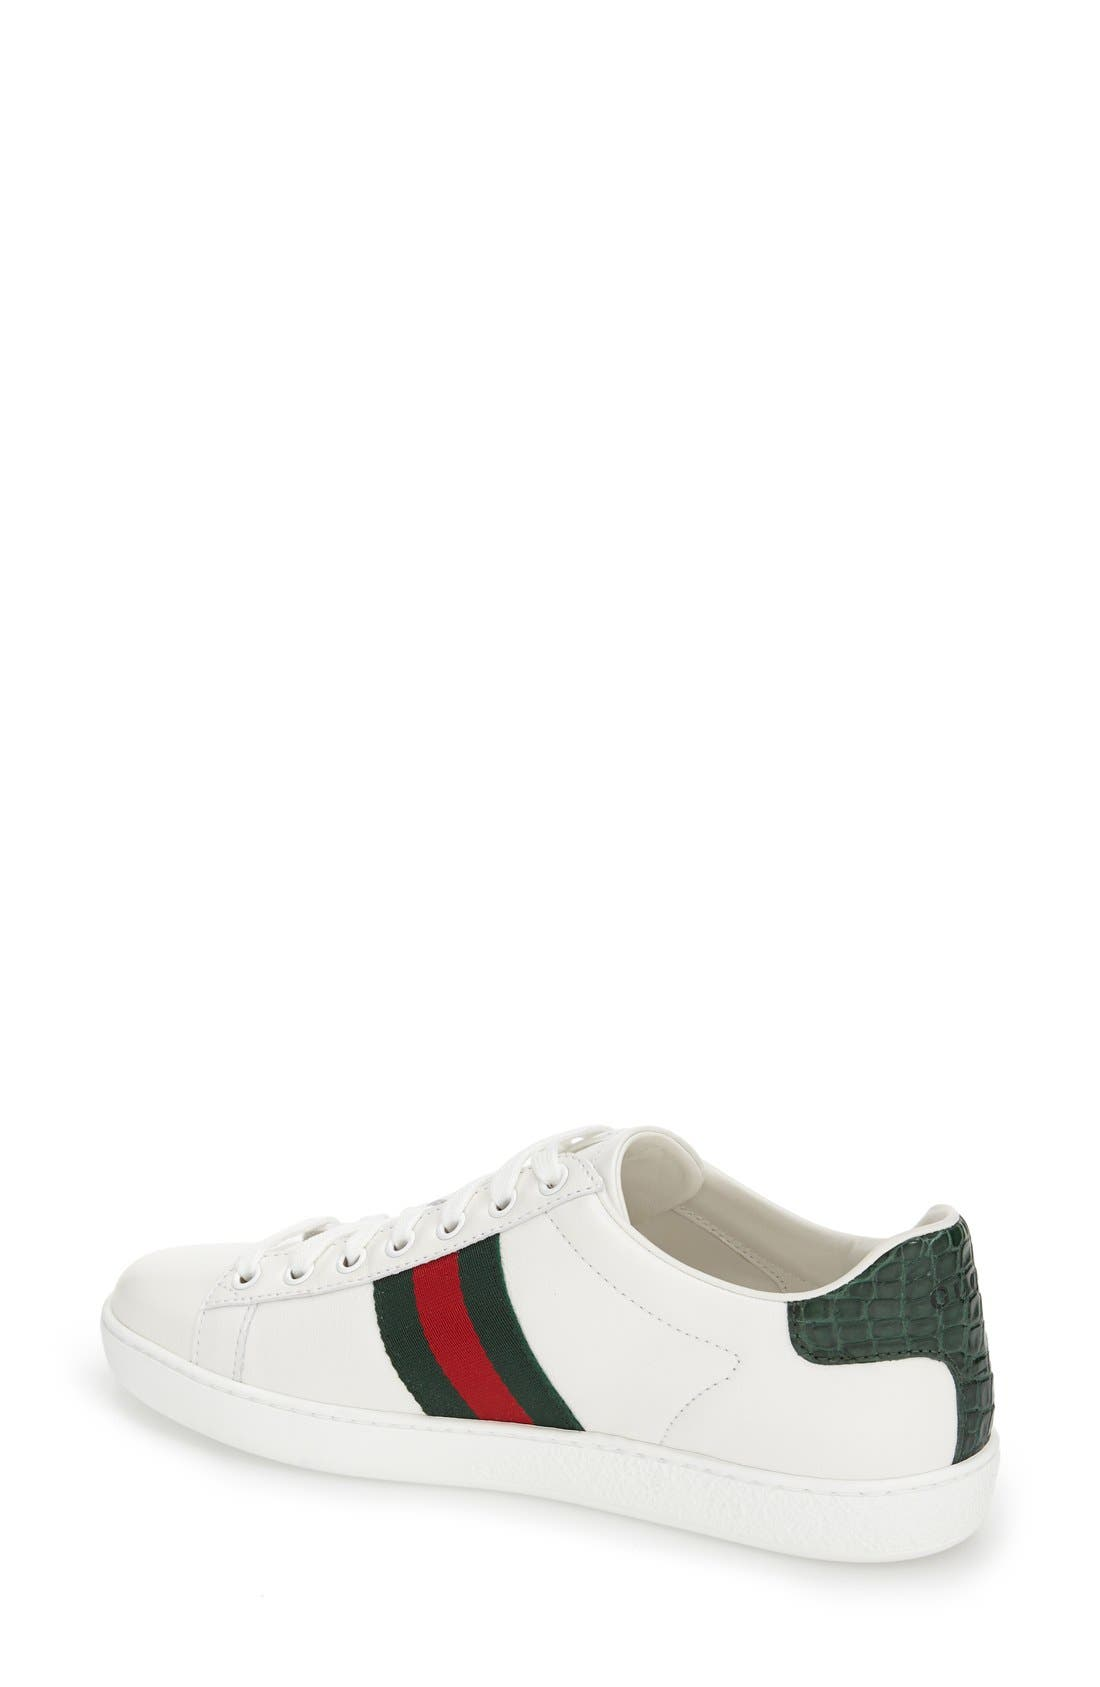 Gucci Women s Shoes  cf2c5fd4ae3